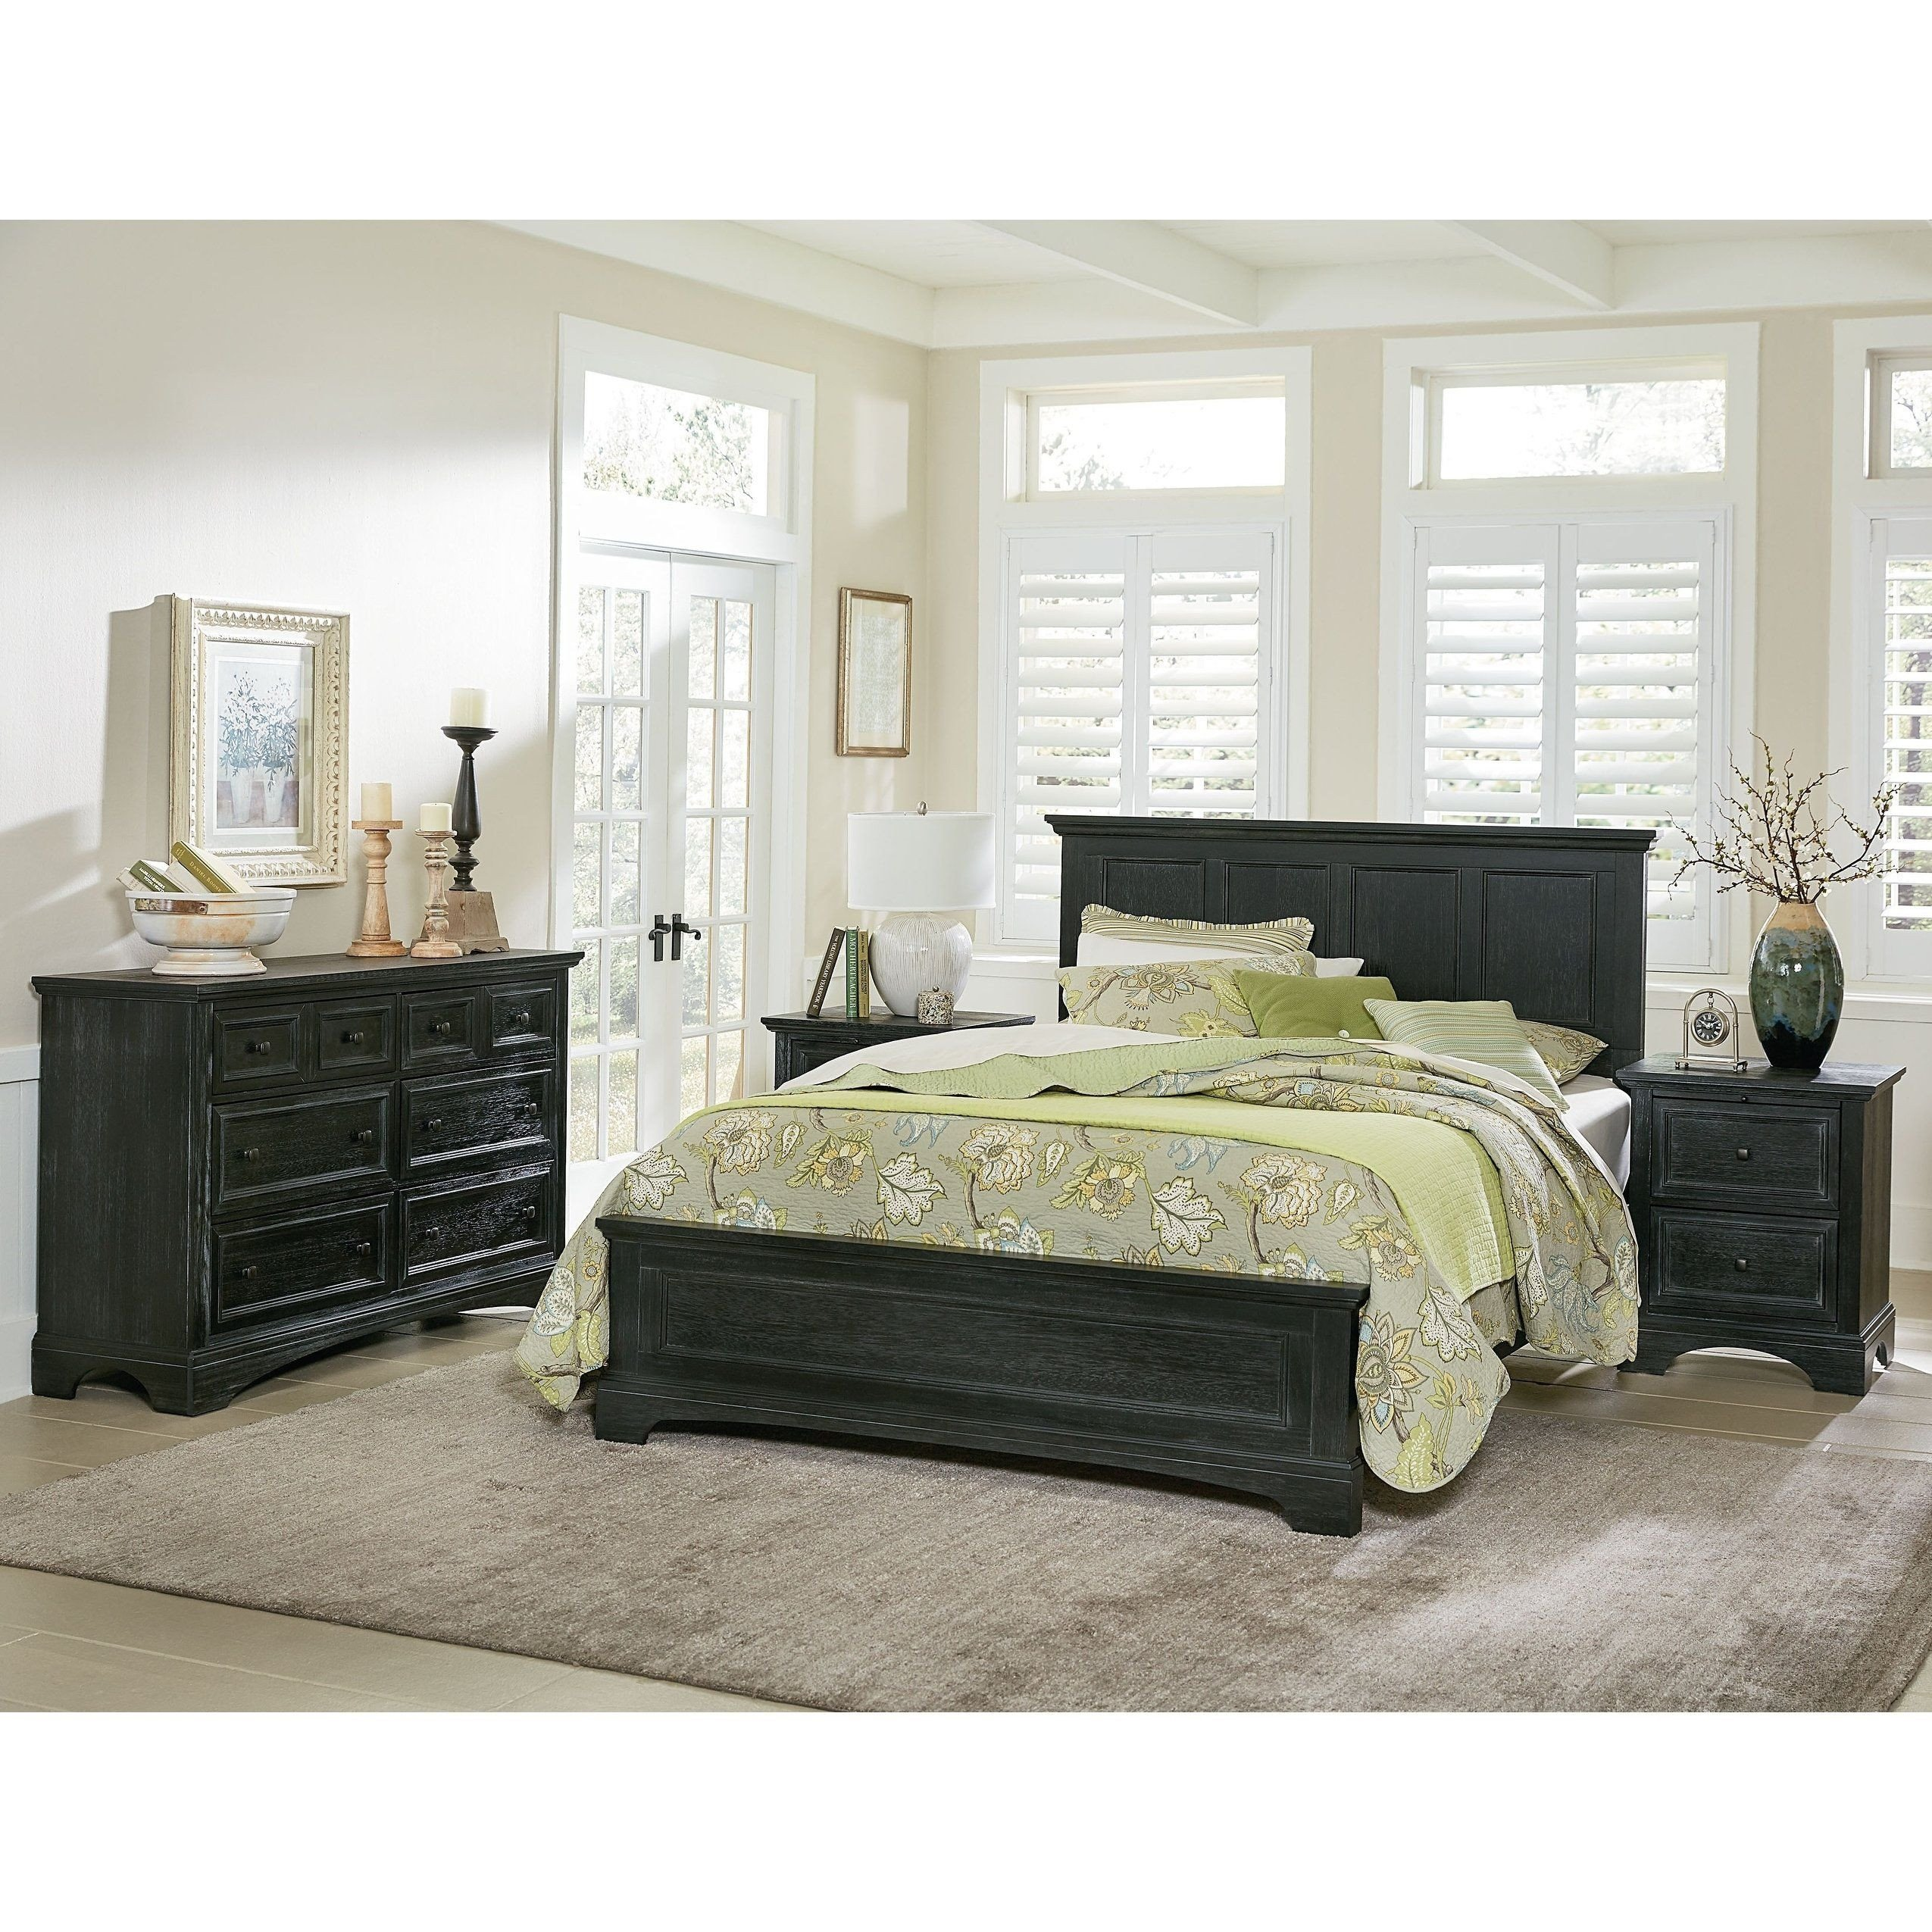 Complete Queen Bedroom Set Inspirational Farmhouse Basics Queen Bedroom Set with 2 Nightstands and 1